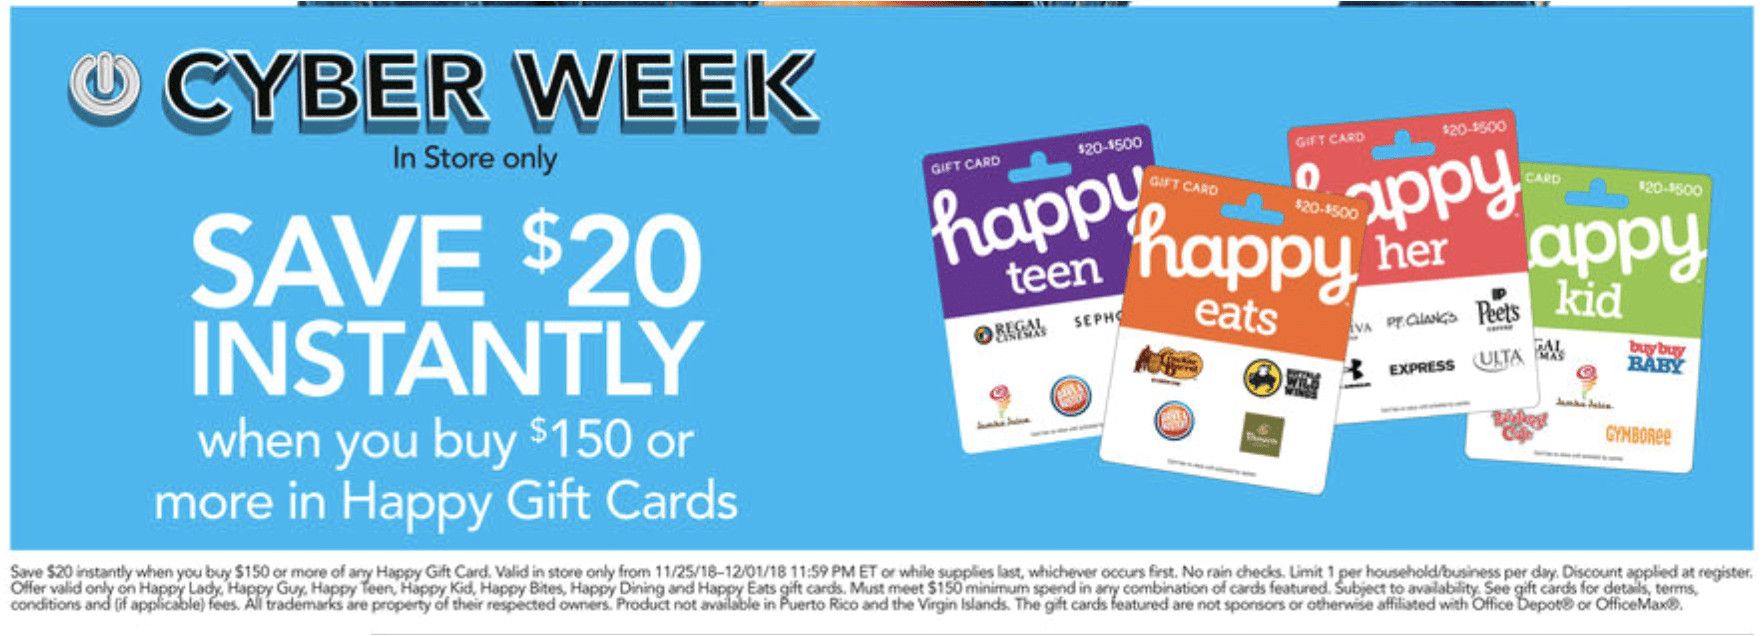 Comenity Bank Pre Approved Credit Cards Expired Office Depot Max 20 Discount when You Buy 150 or More In